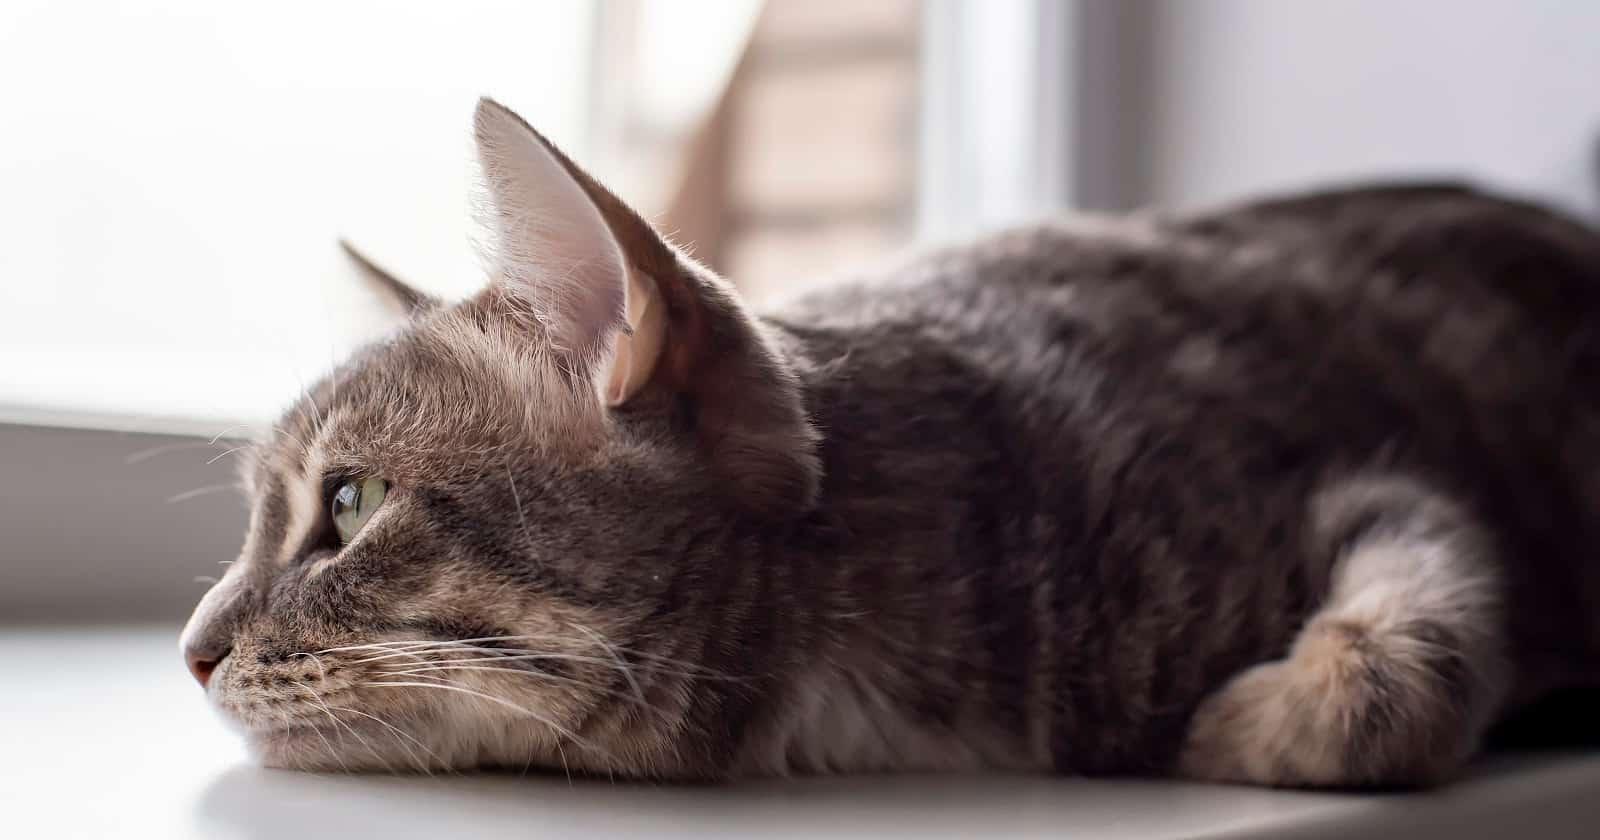 Read on to find out how to prevent separation anxiety in cats. Plus, learn how to treat it if your prevention efforts don't work out.